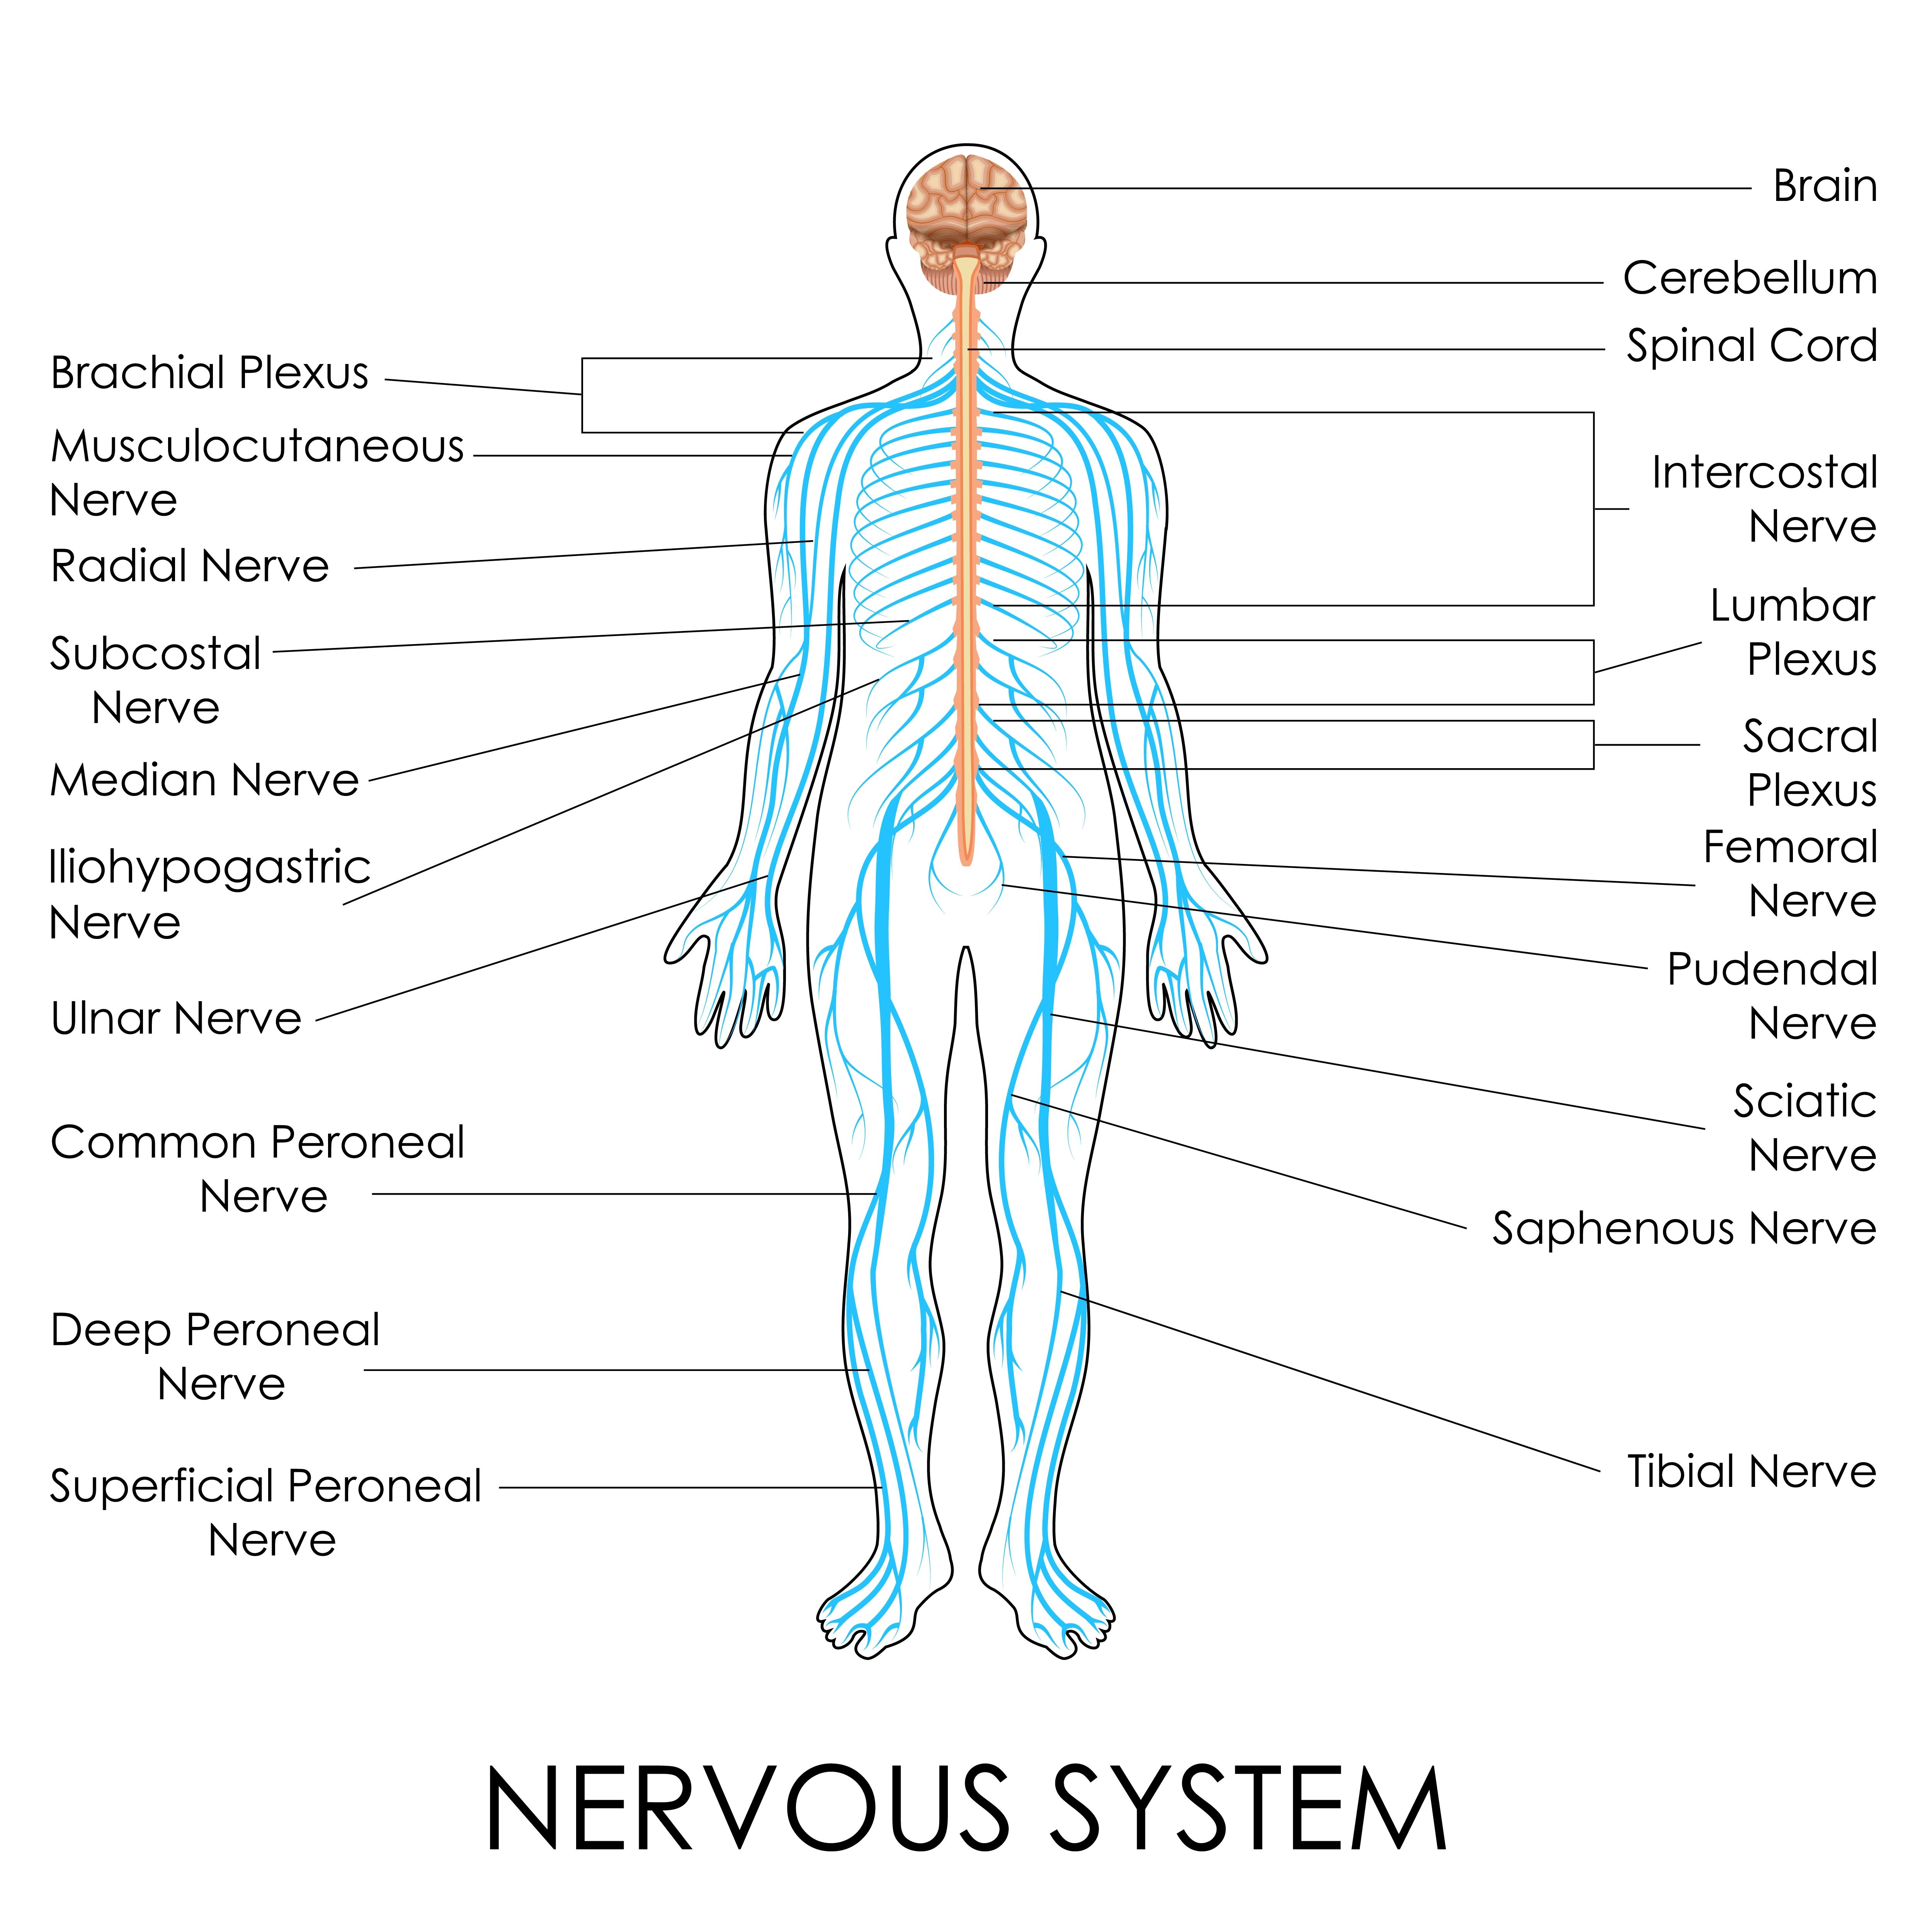 small resolution of nerves of the body human anatomy diagram